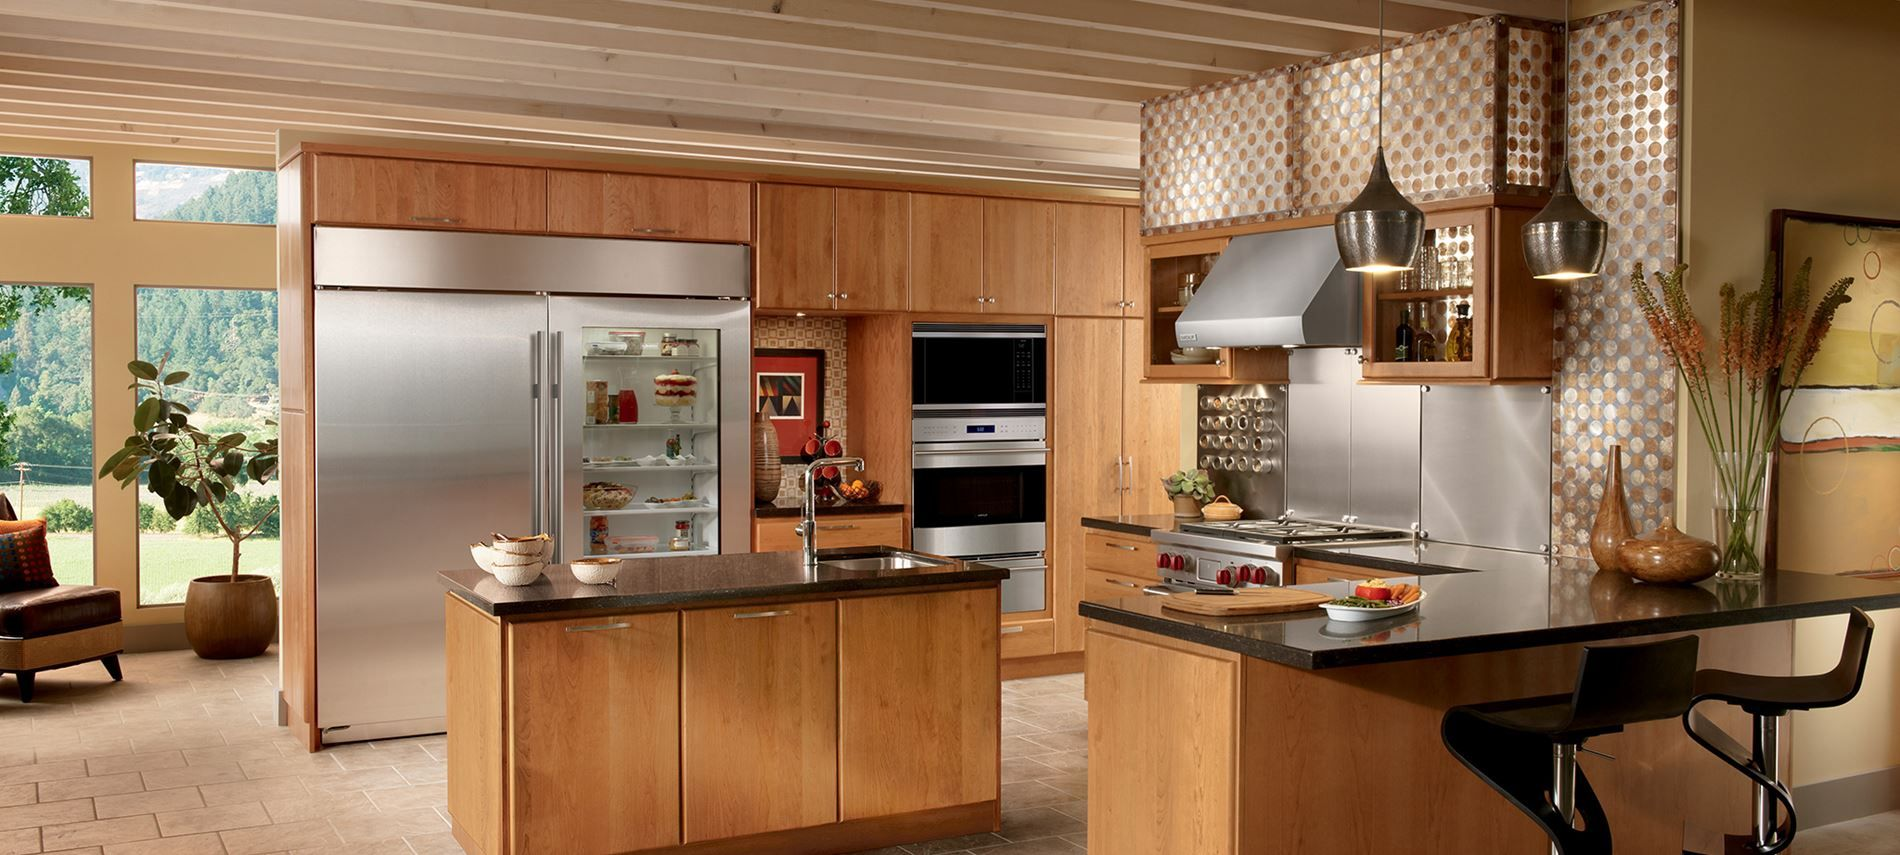 U Shaped Kitchen Design With Island Feat Stylish Glass Front Refrigerator Residential And Black Barstools Modern